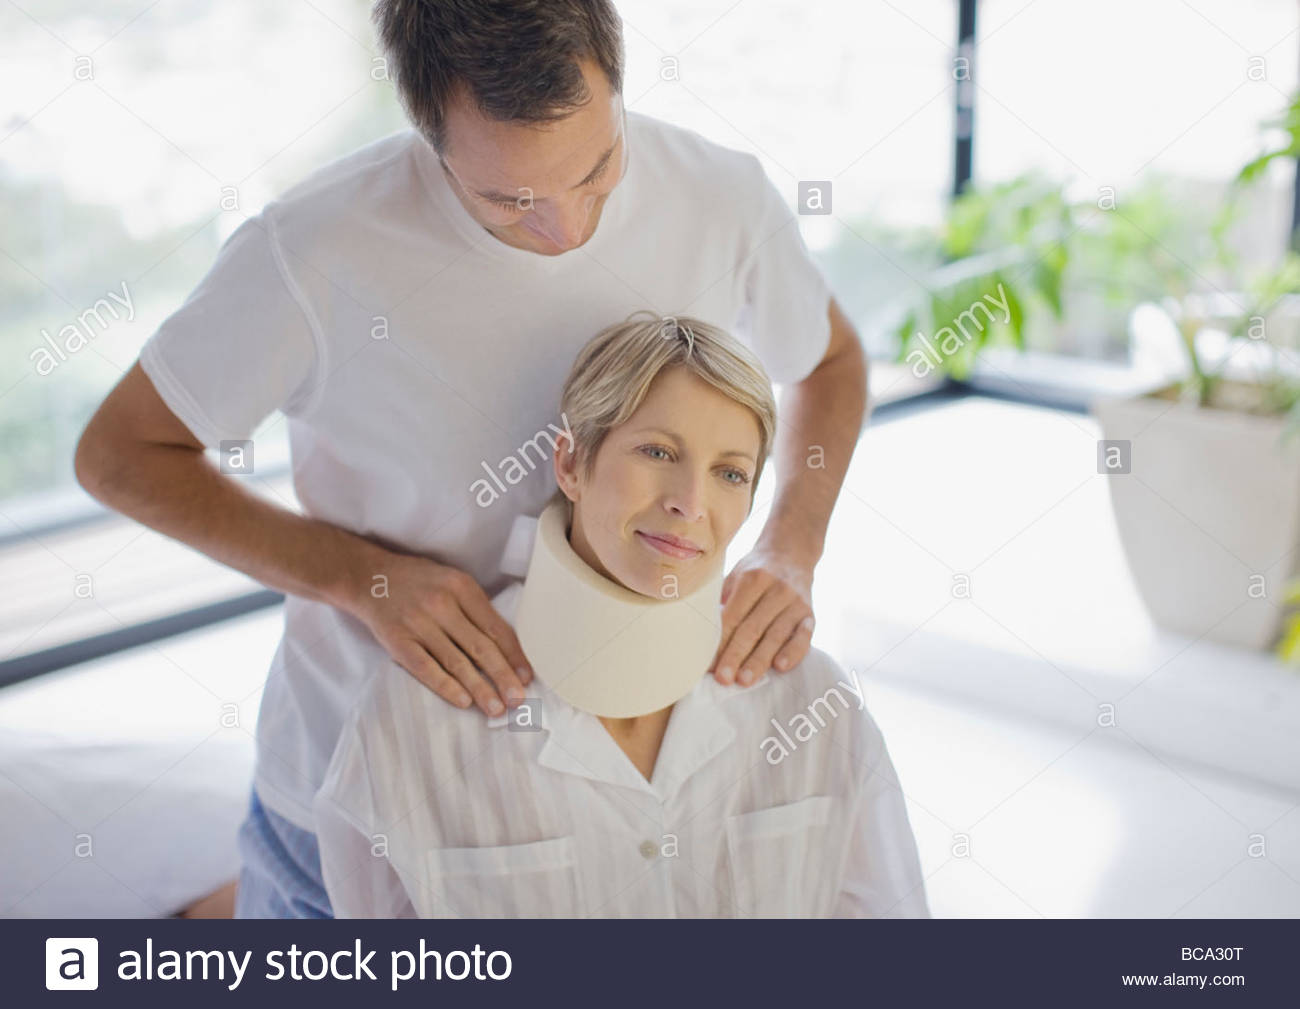 Husband helping wife in neck brace - Stock Image